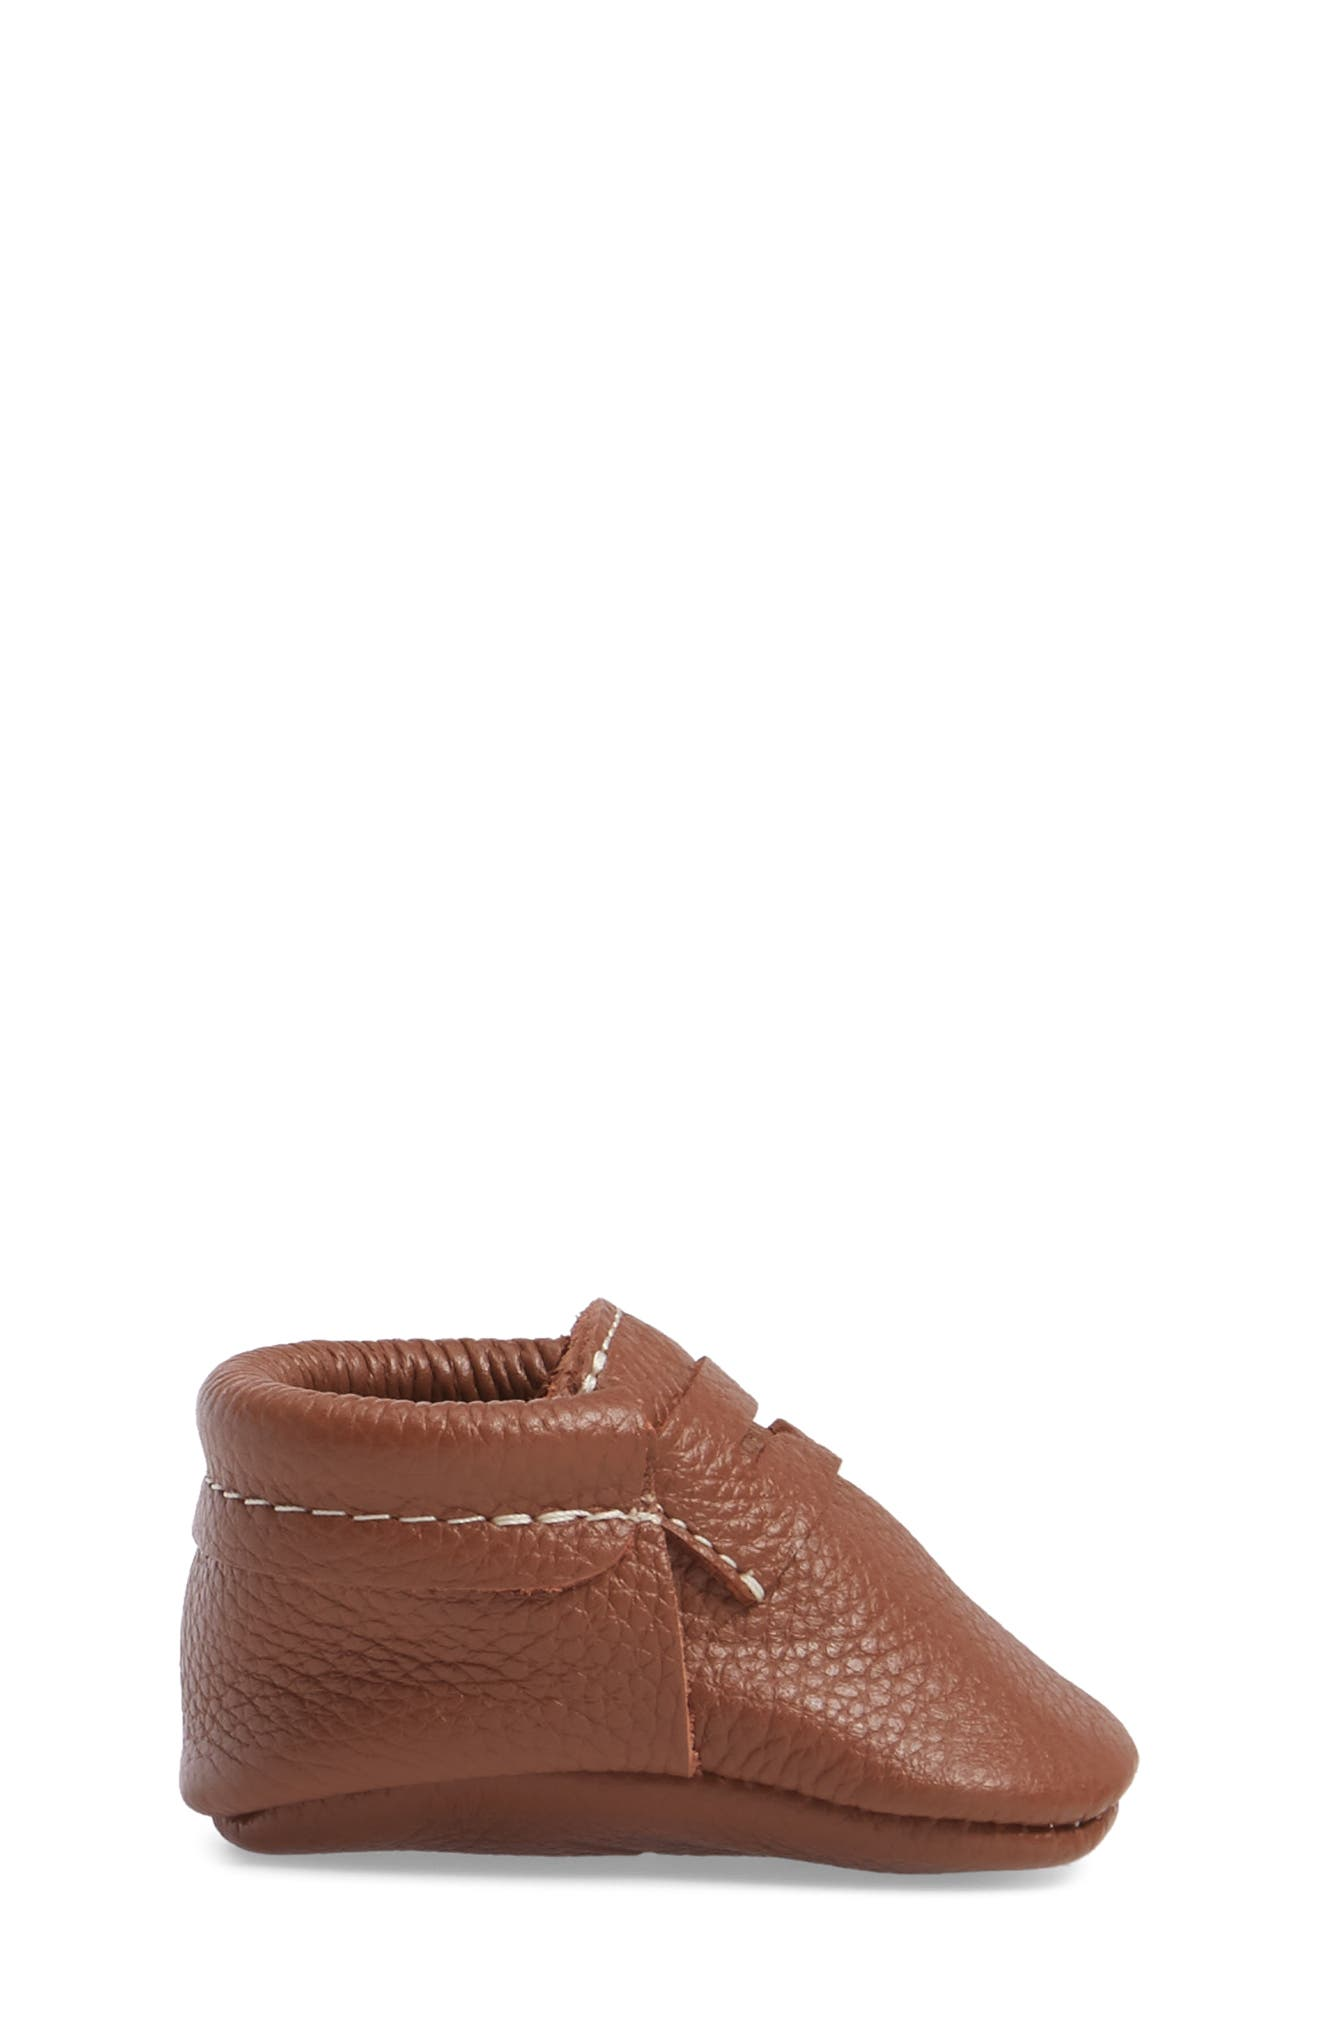 Penny Loafer Crib Shoe,                             Alternate thumbnail 3, color,                             Cognac